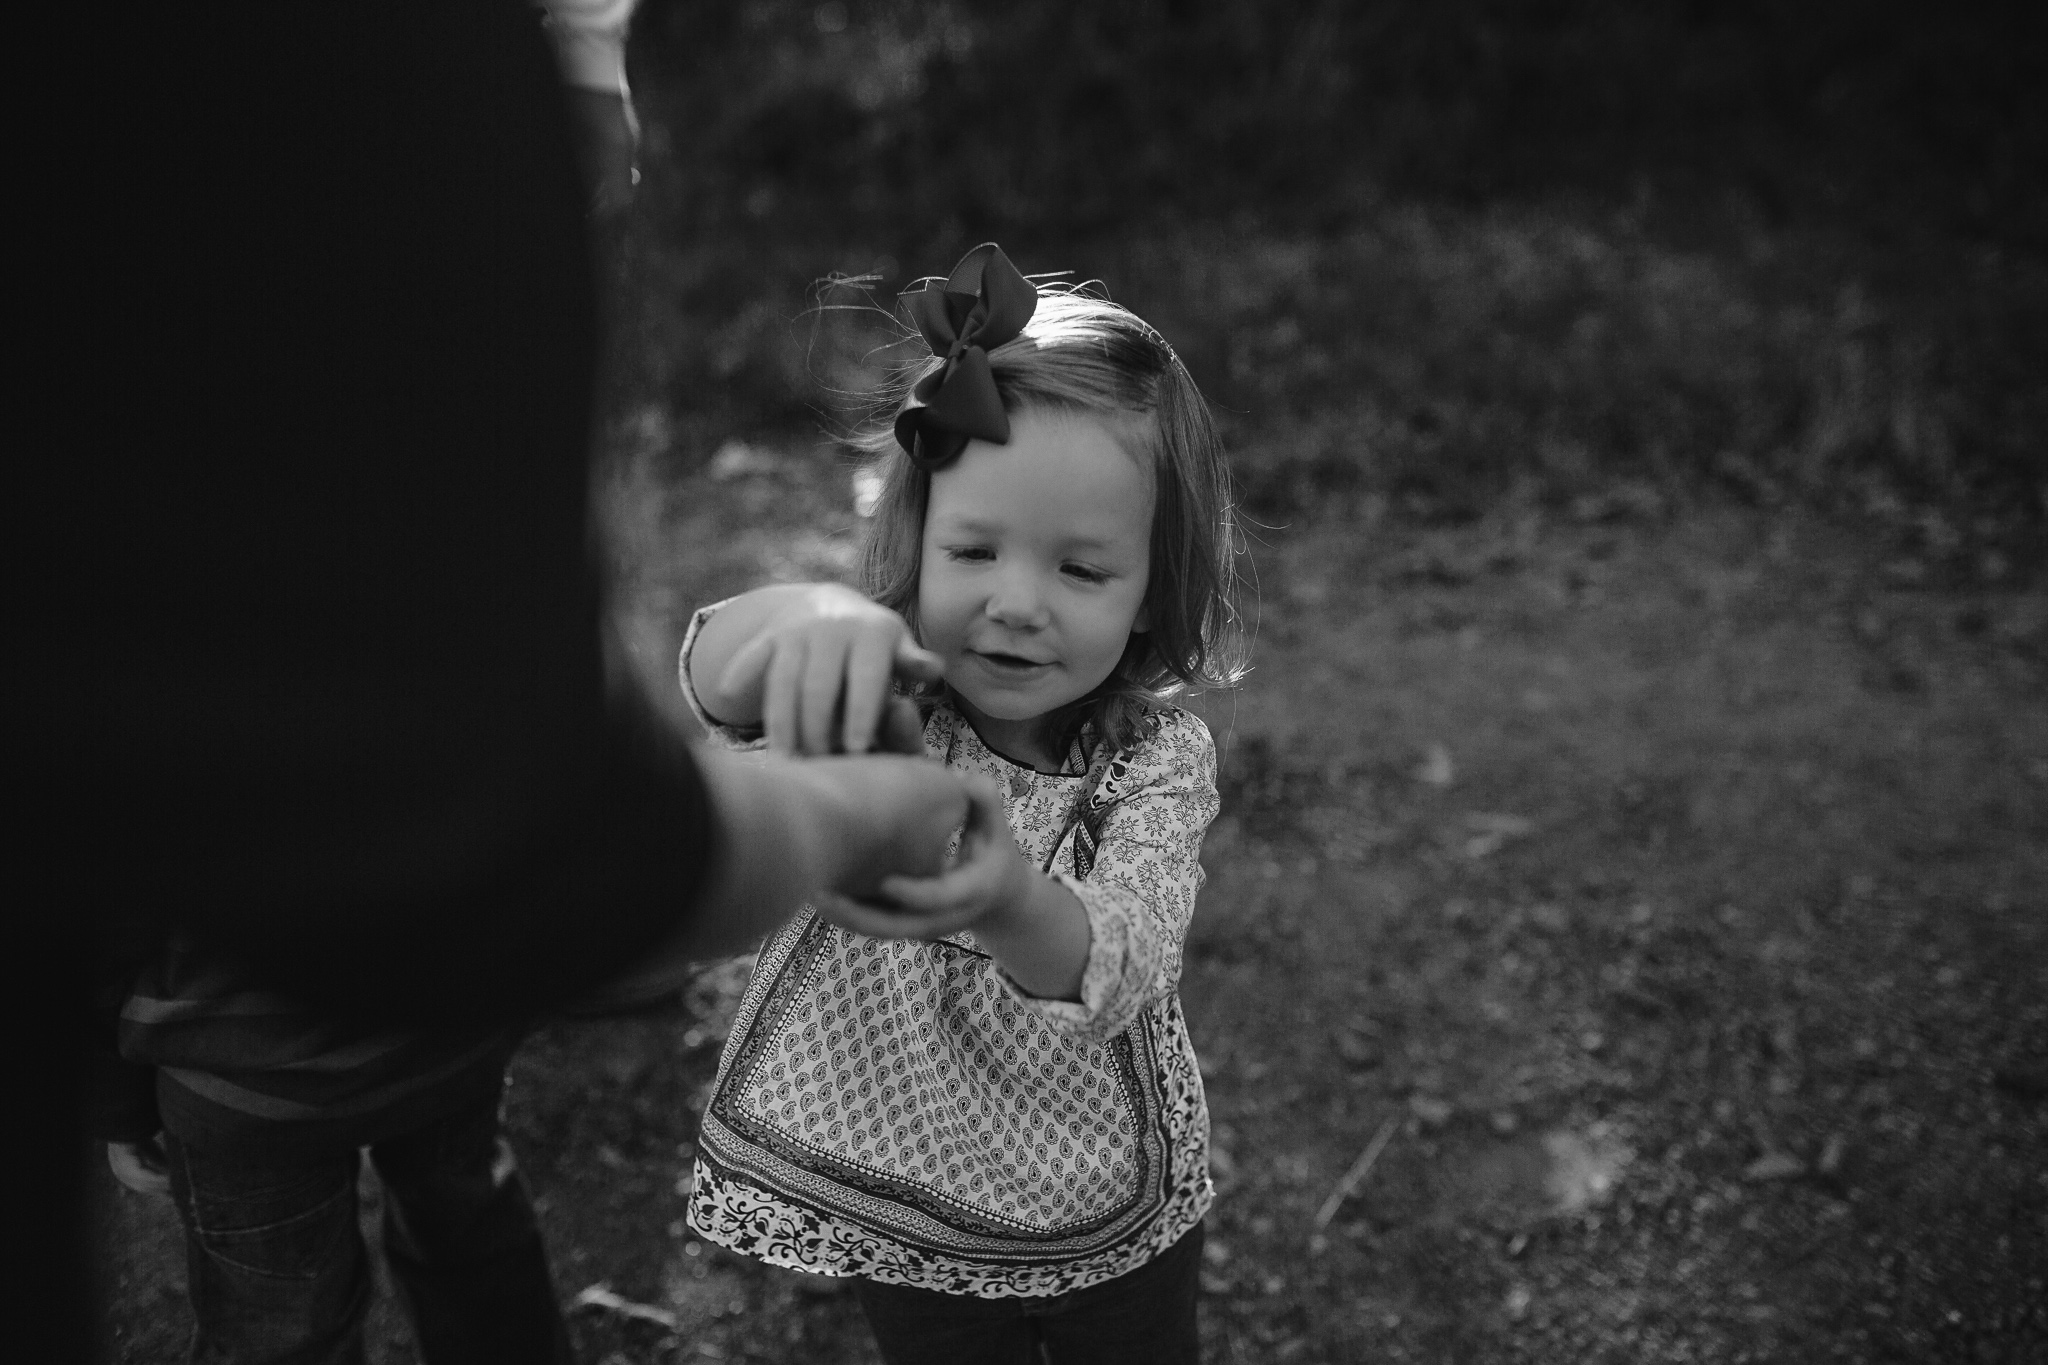 cassie-cook-photography-memphis-family-photographer-lifestyle-photographer-outdoors-family-photos-hernando-ms-family-photographer